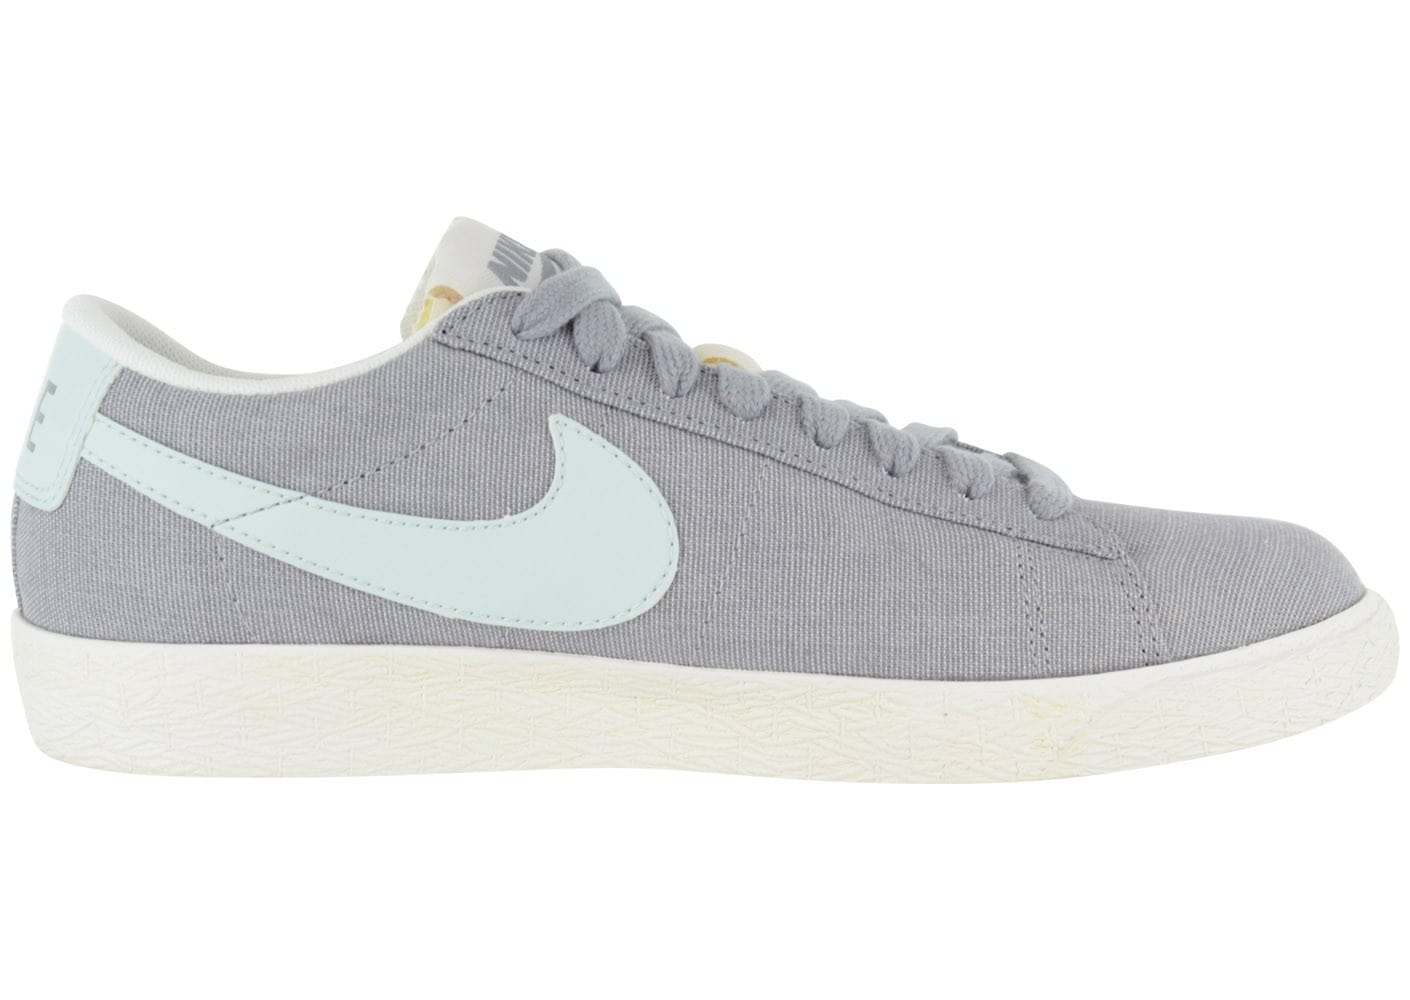 beauty good looking amazing selection Nike Blazer Low Toile Grise - Chaussures Chaussures - Chausport